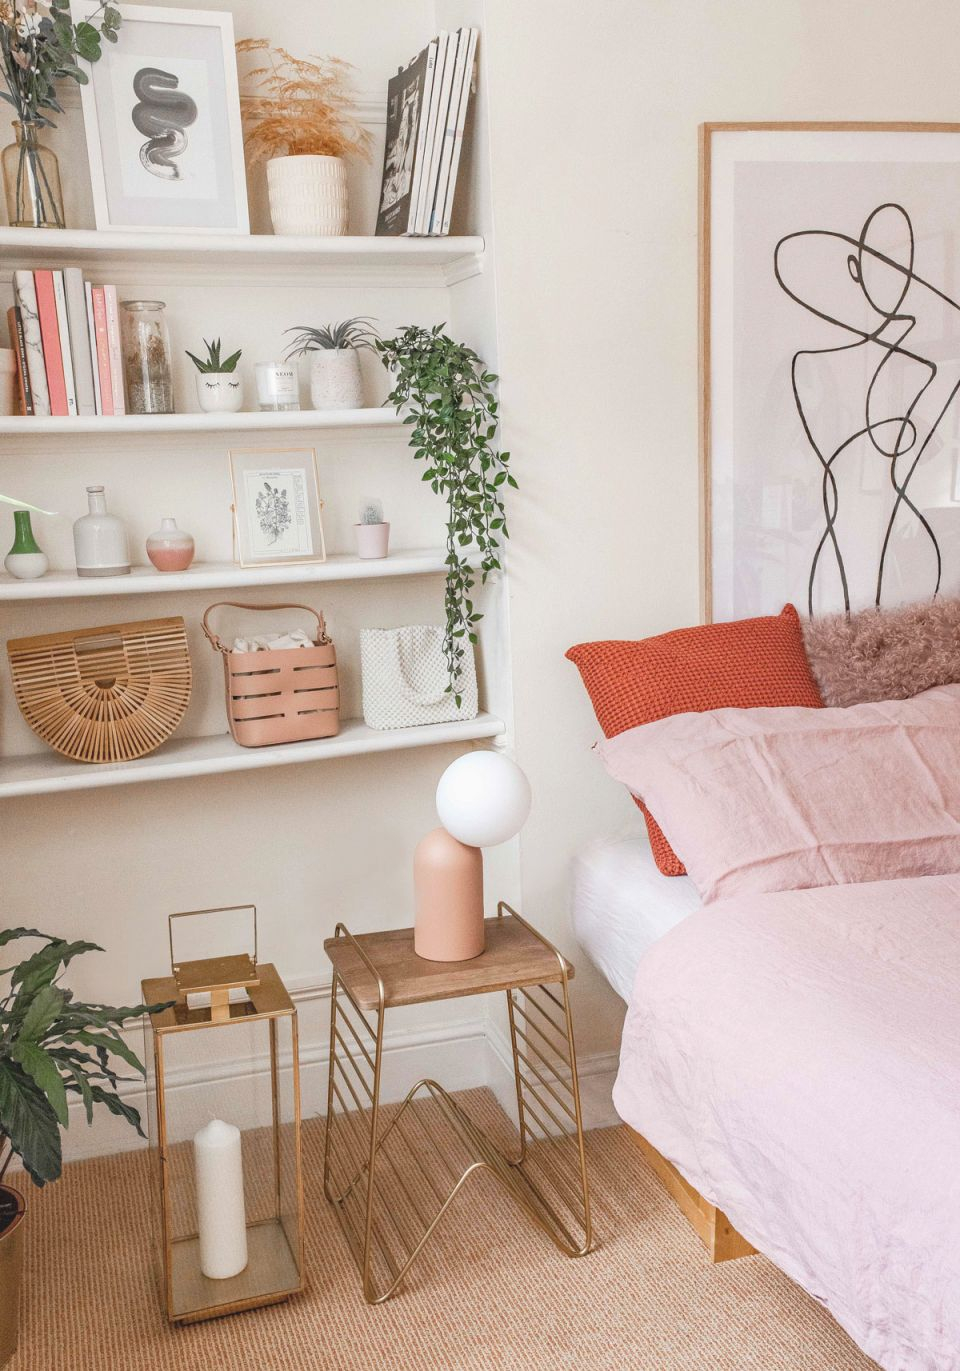 5 Bedroom Decor Ideas For A Spring Update – Kelsey In London pertaining to Beautiful Decoration For Bedrooms Ideas